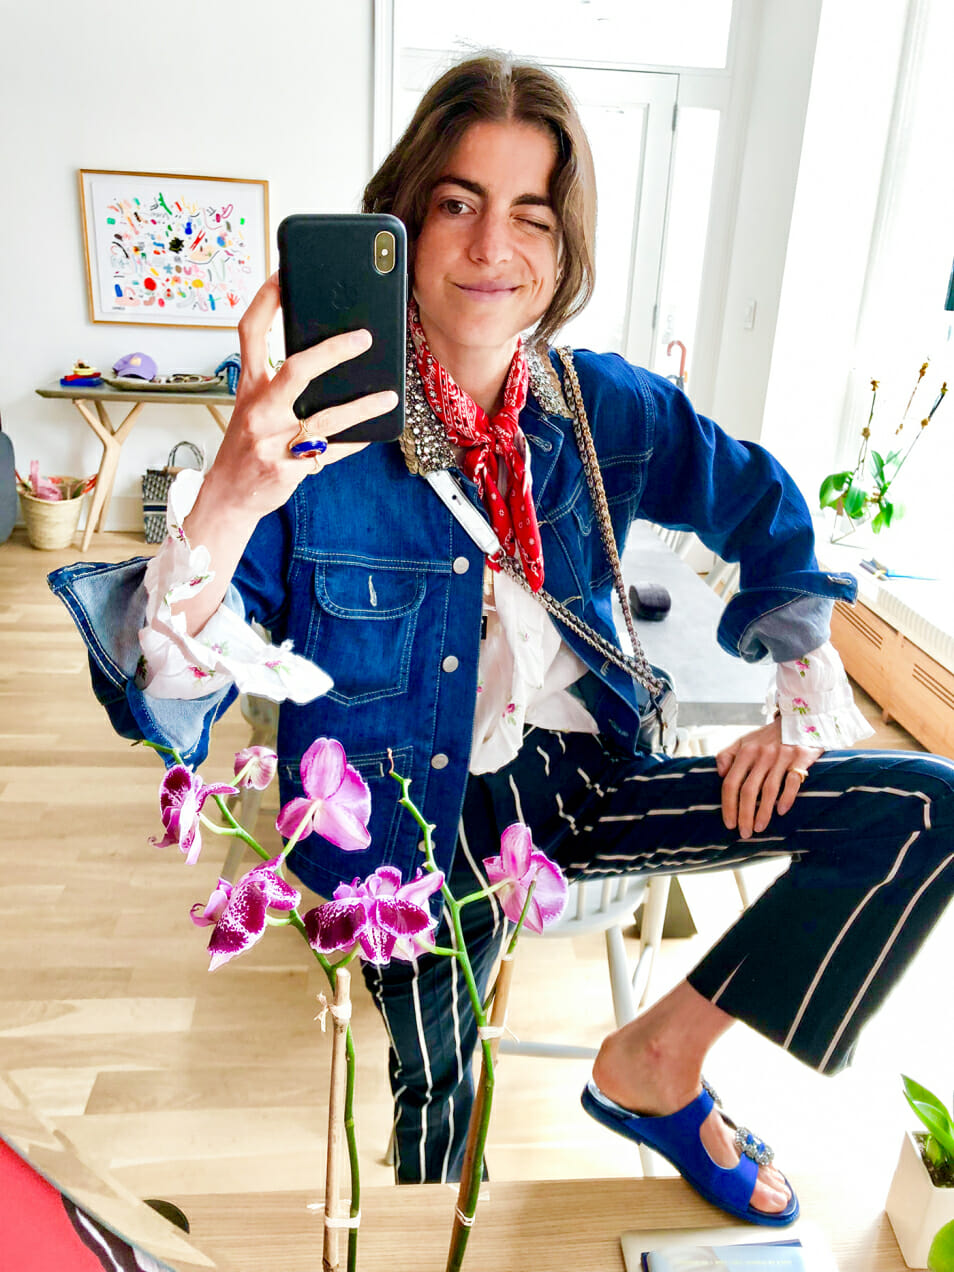 What do you wear to feel like your best self? Leandra takes a selfie.